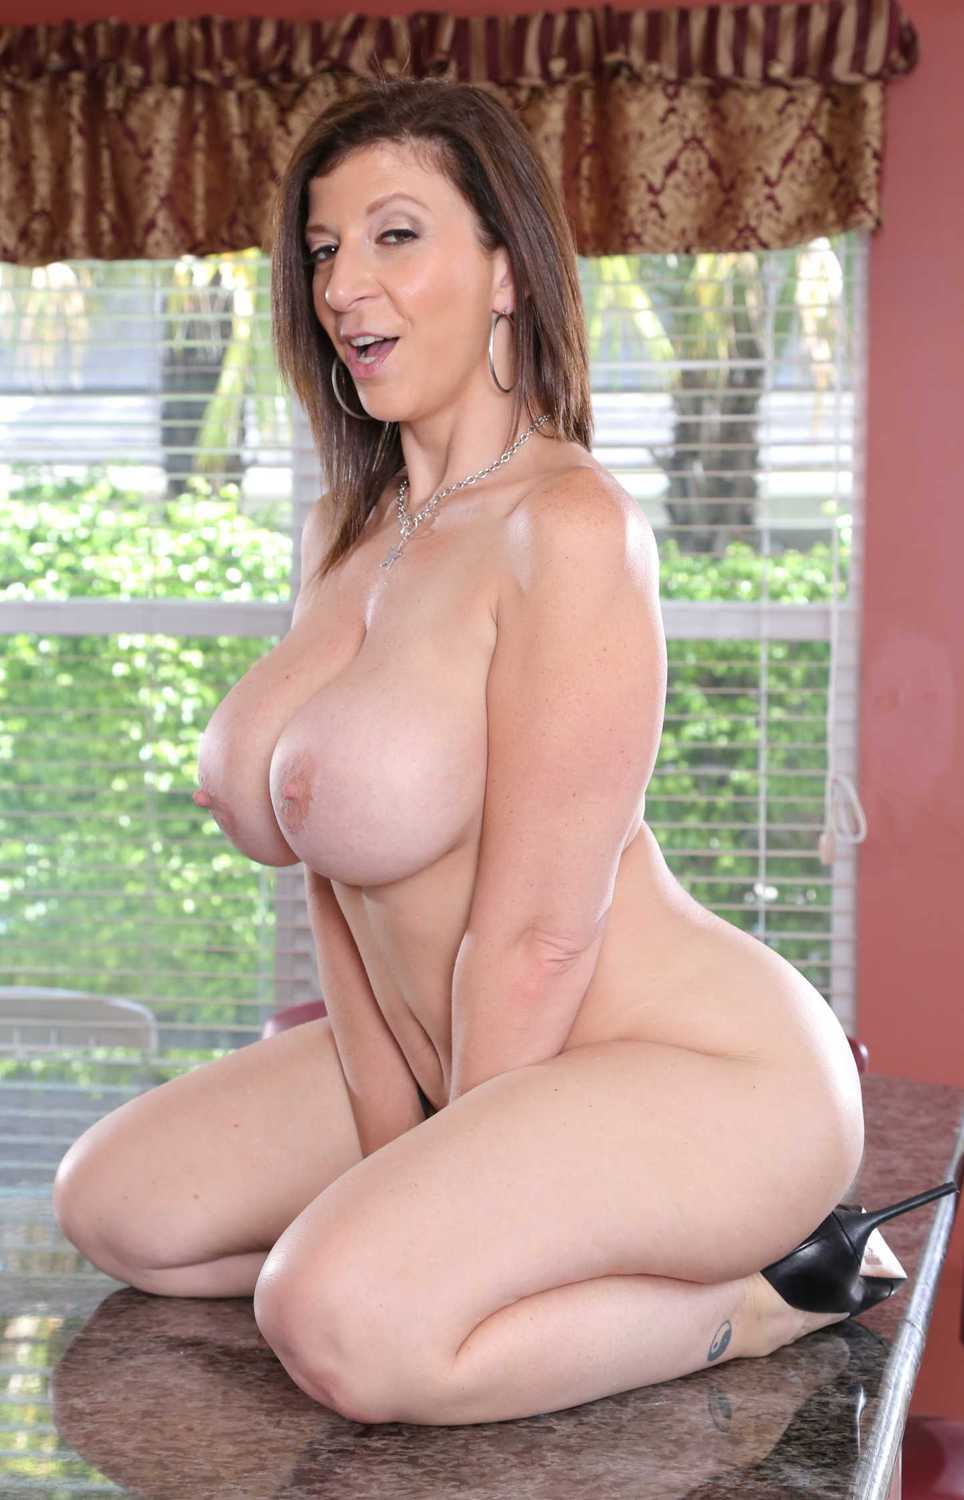 Angelina castro bbw birthday 3way treat - 3 part 5